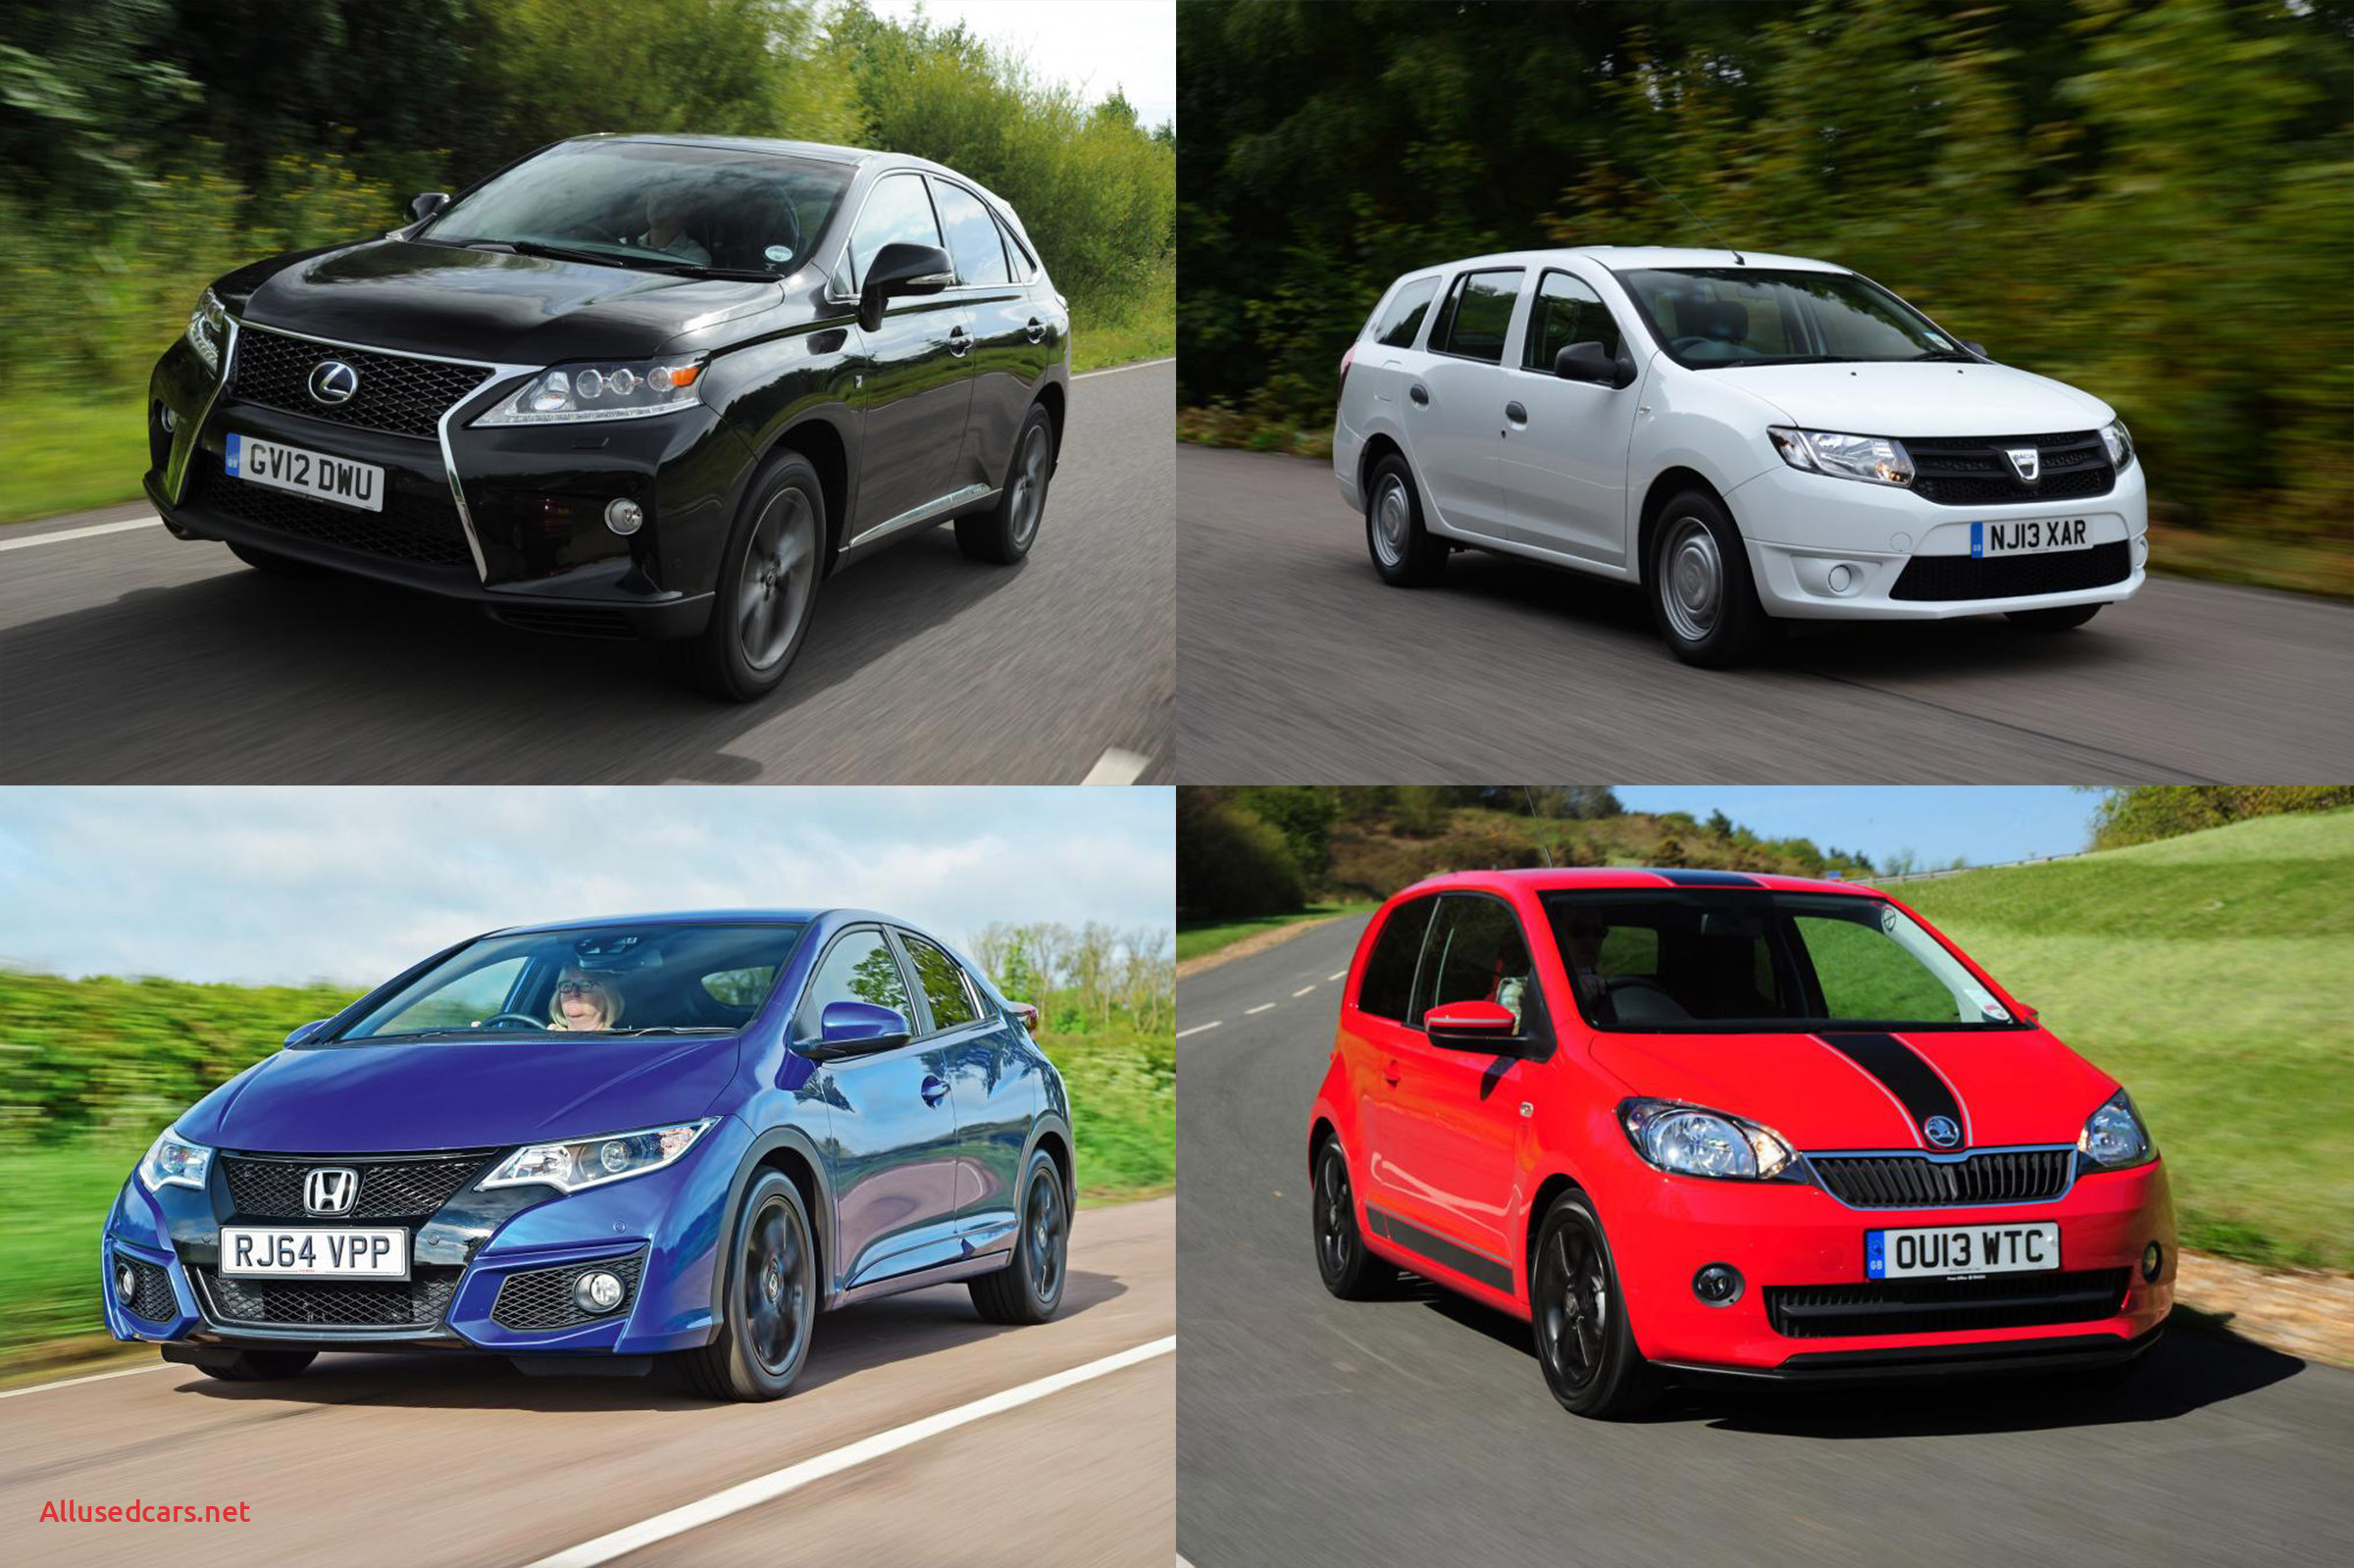 Awesome Repossessed Cars for Sale Near Me Best Of Awesome Reliable Used Cars for Sale Near Me